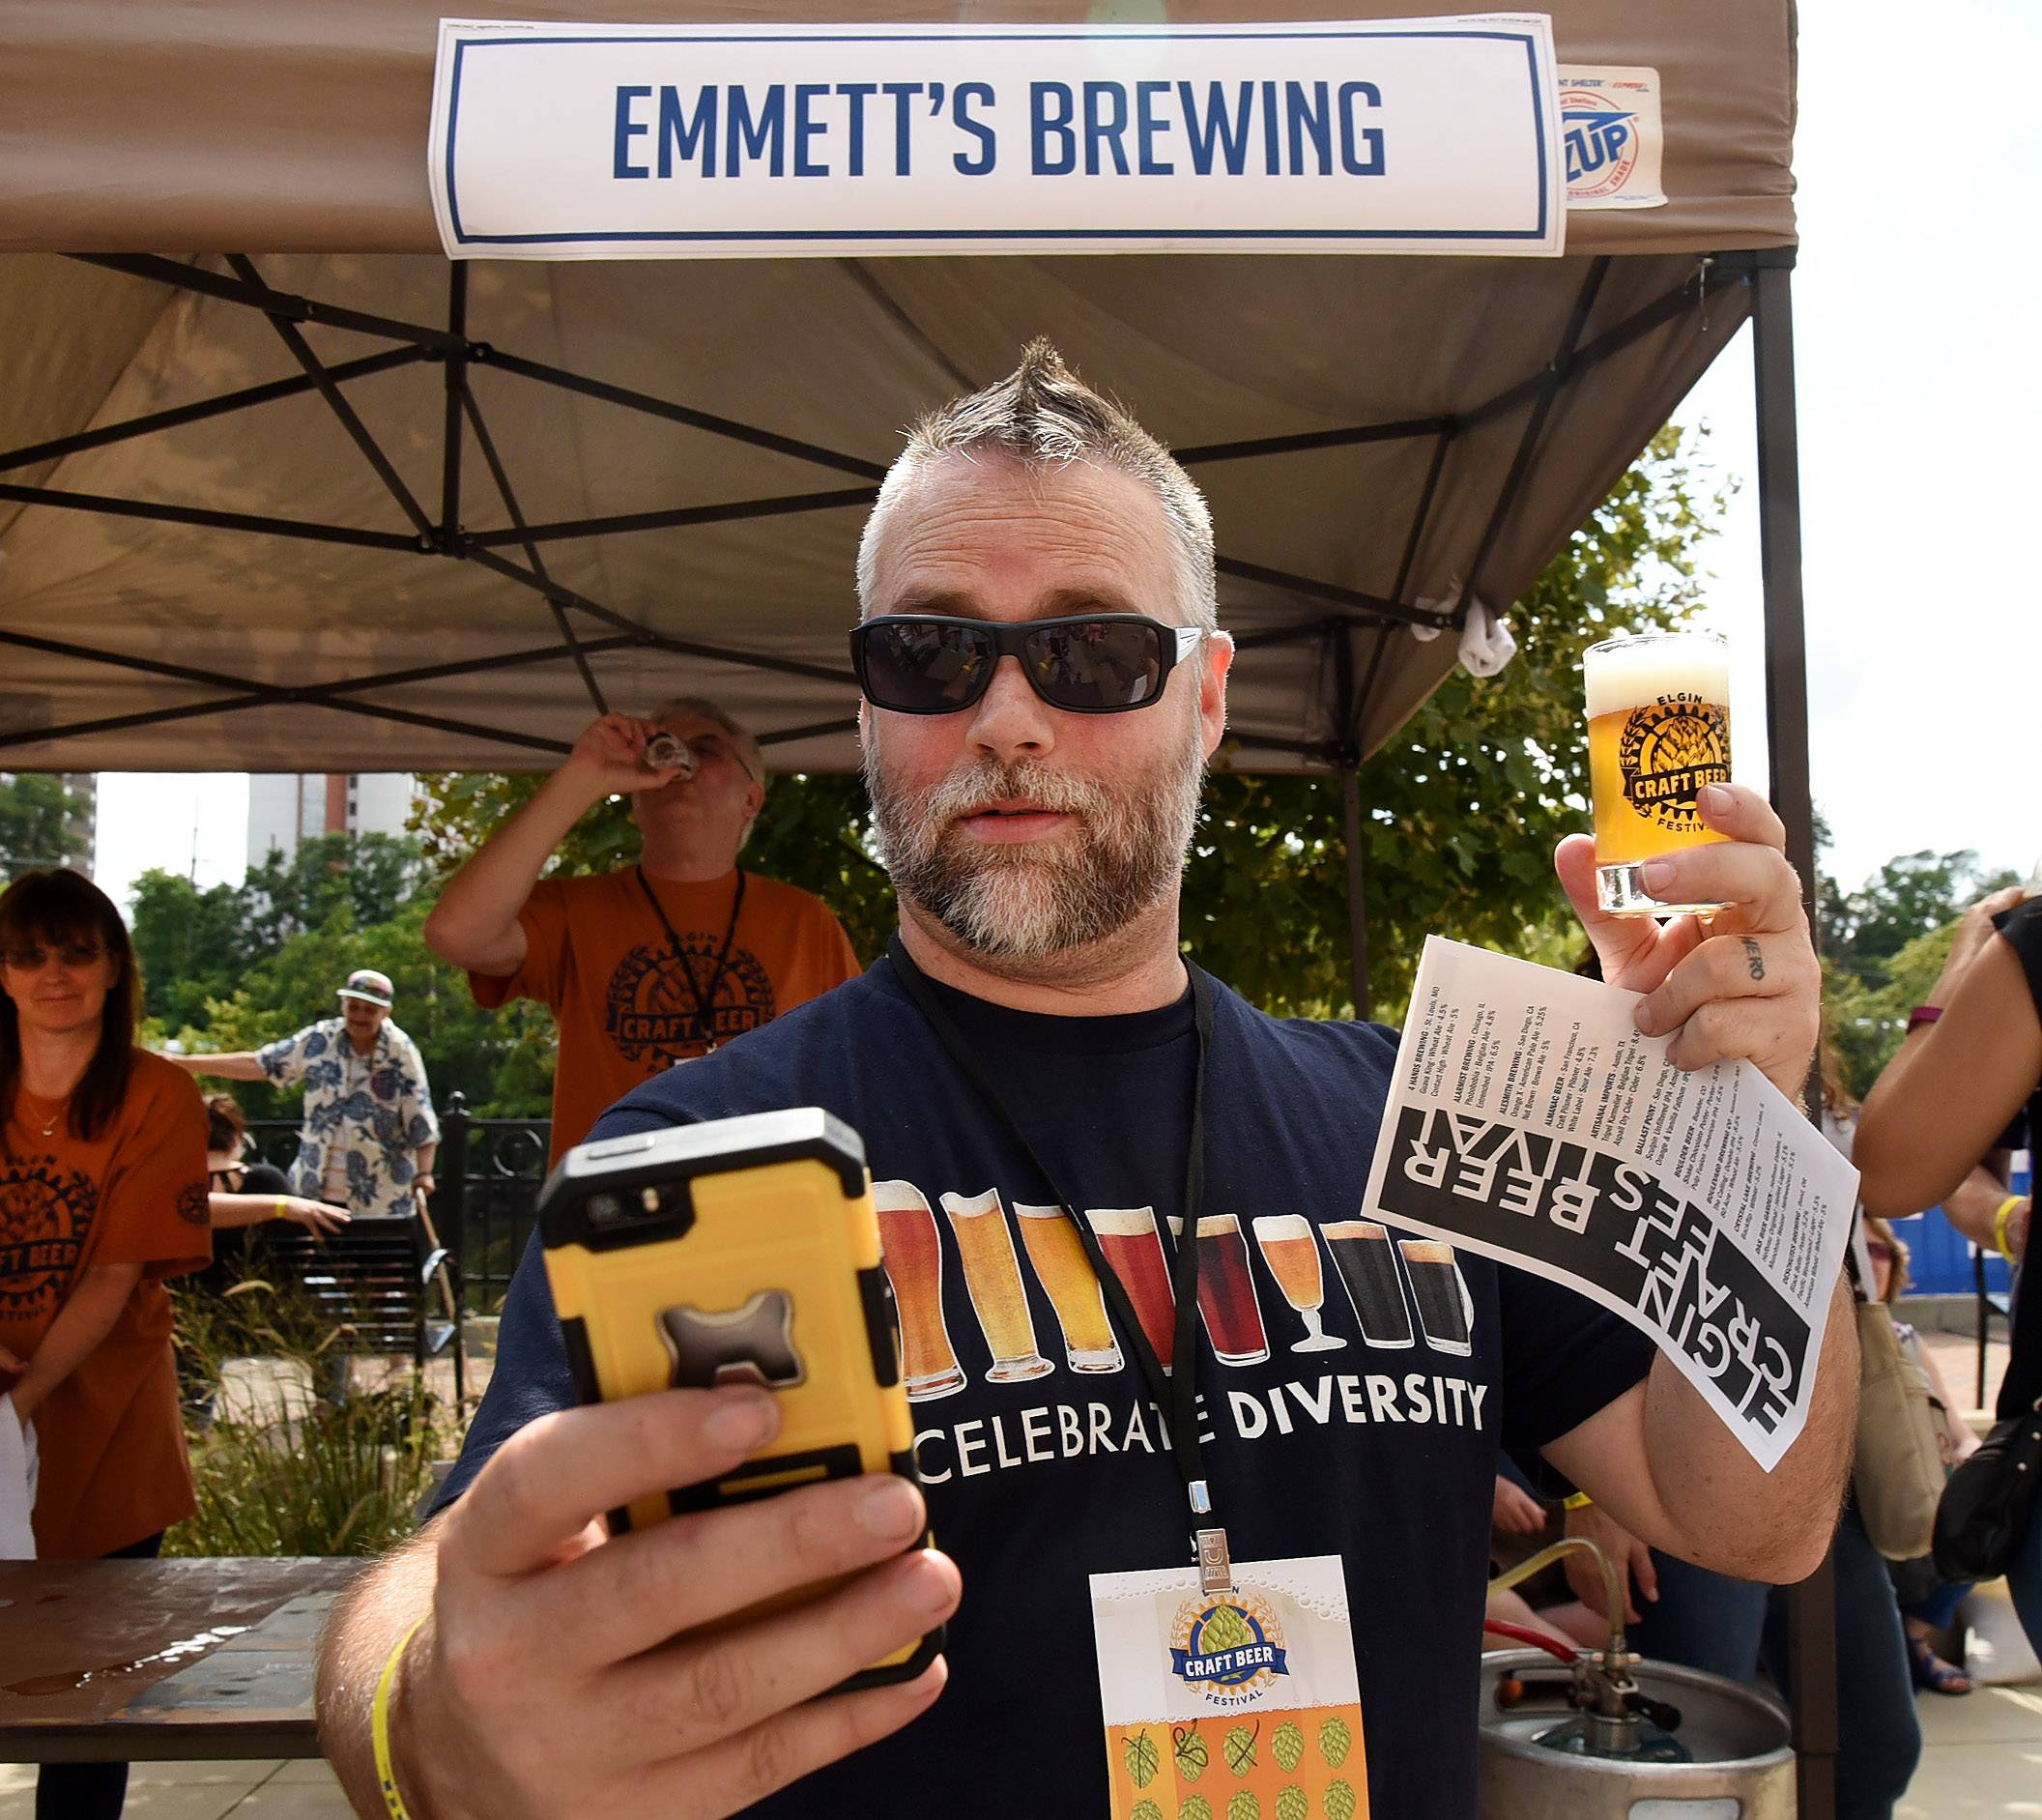 Nick Thomason of Dallas tries for a selfie with Emmett's Brewing of Palatine while visiting friends in Elgin during the Elgin Craft Beer Festival Saturday.